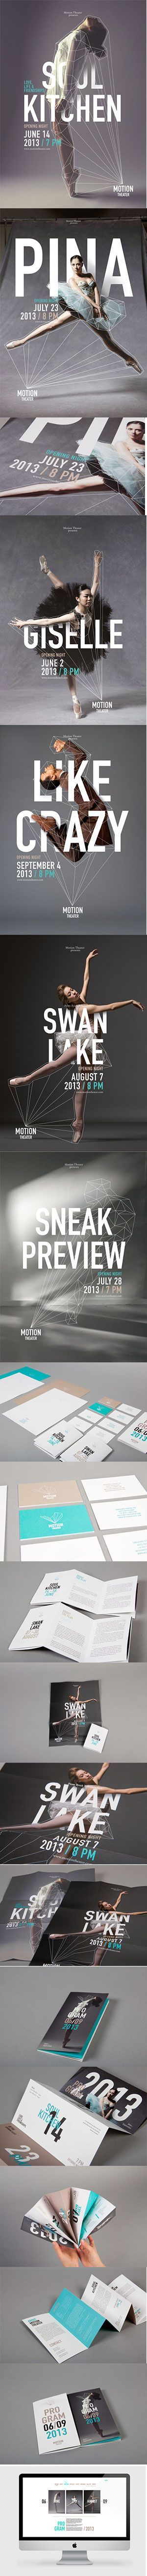 Motion Theater promotion design: flyer, Poster, Homepage   typography / graphic design: Caroline Grohs @ behance  :